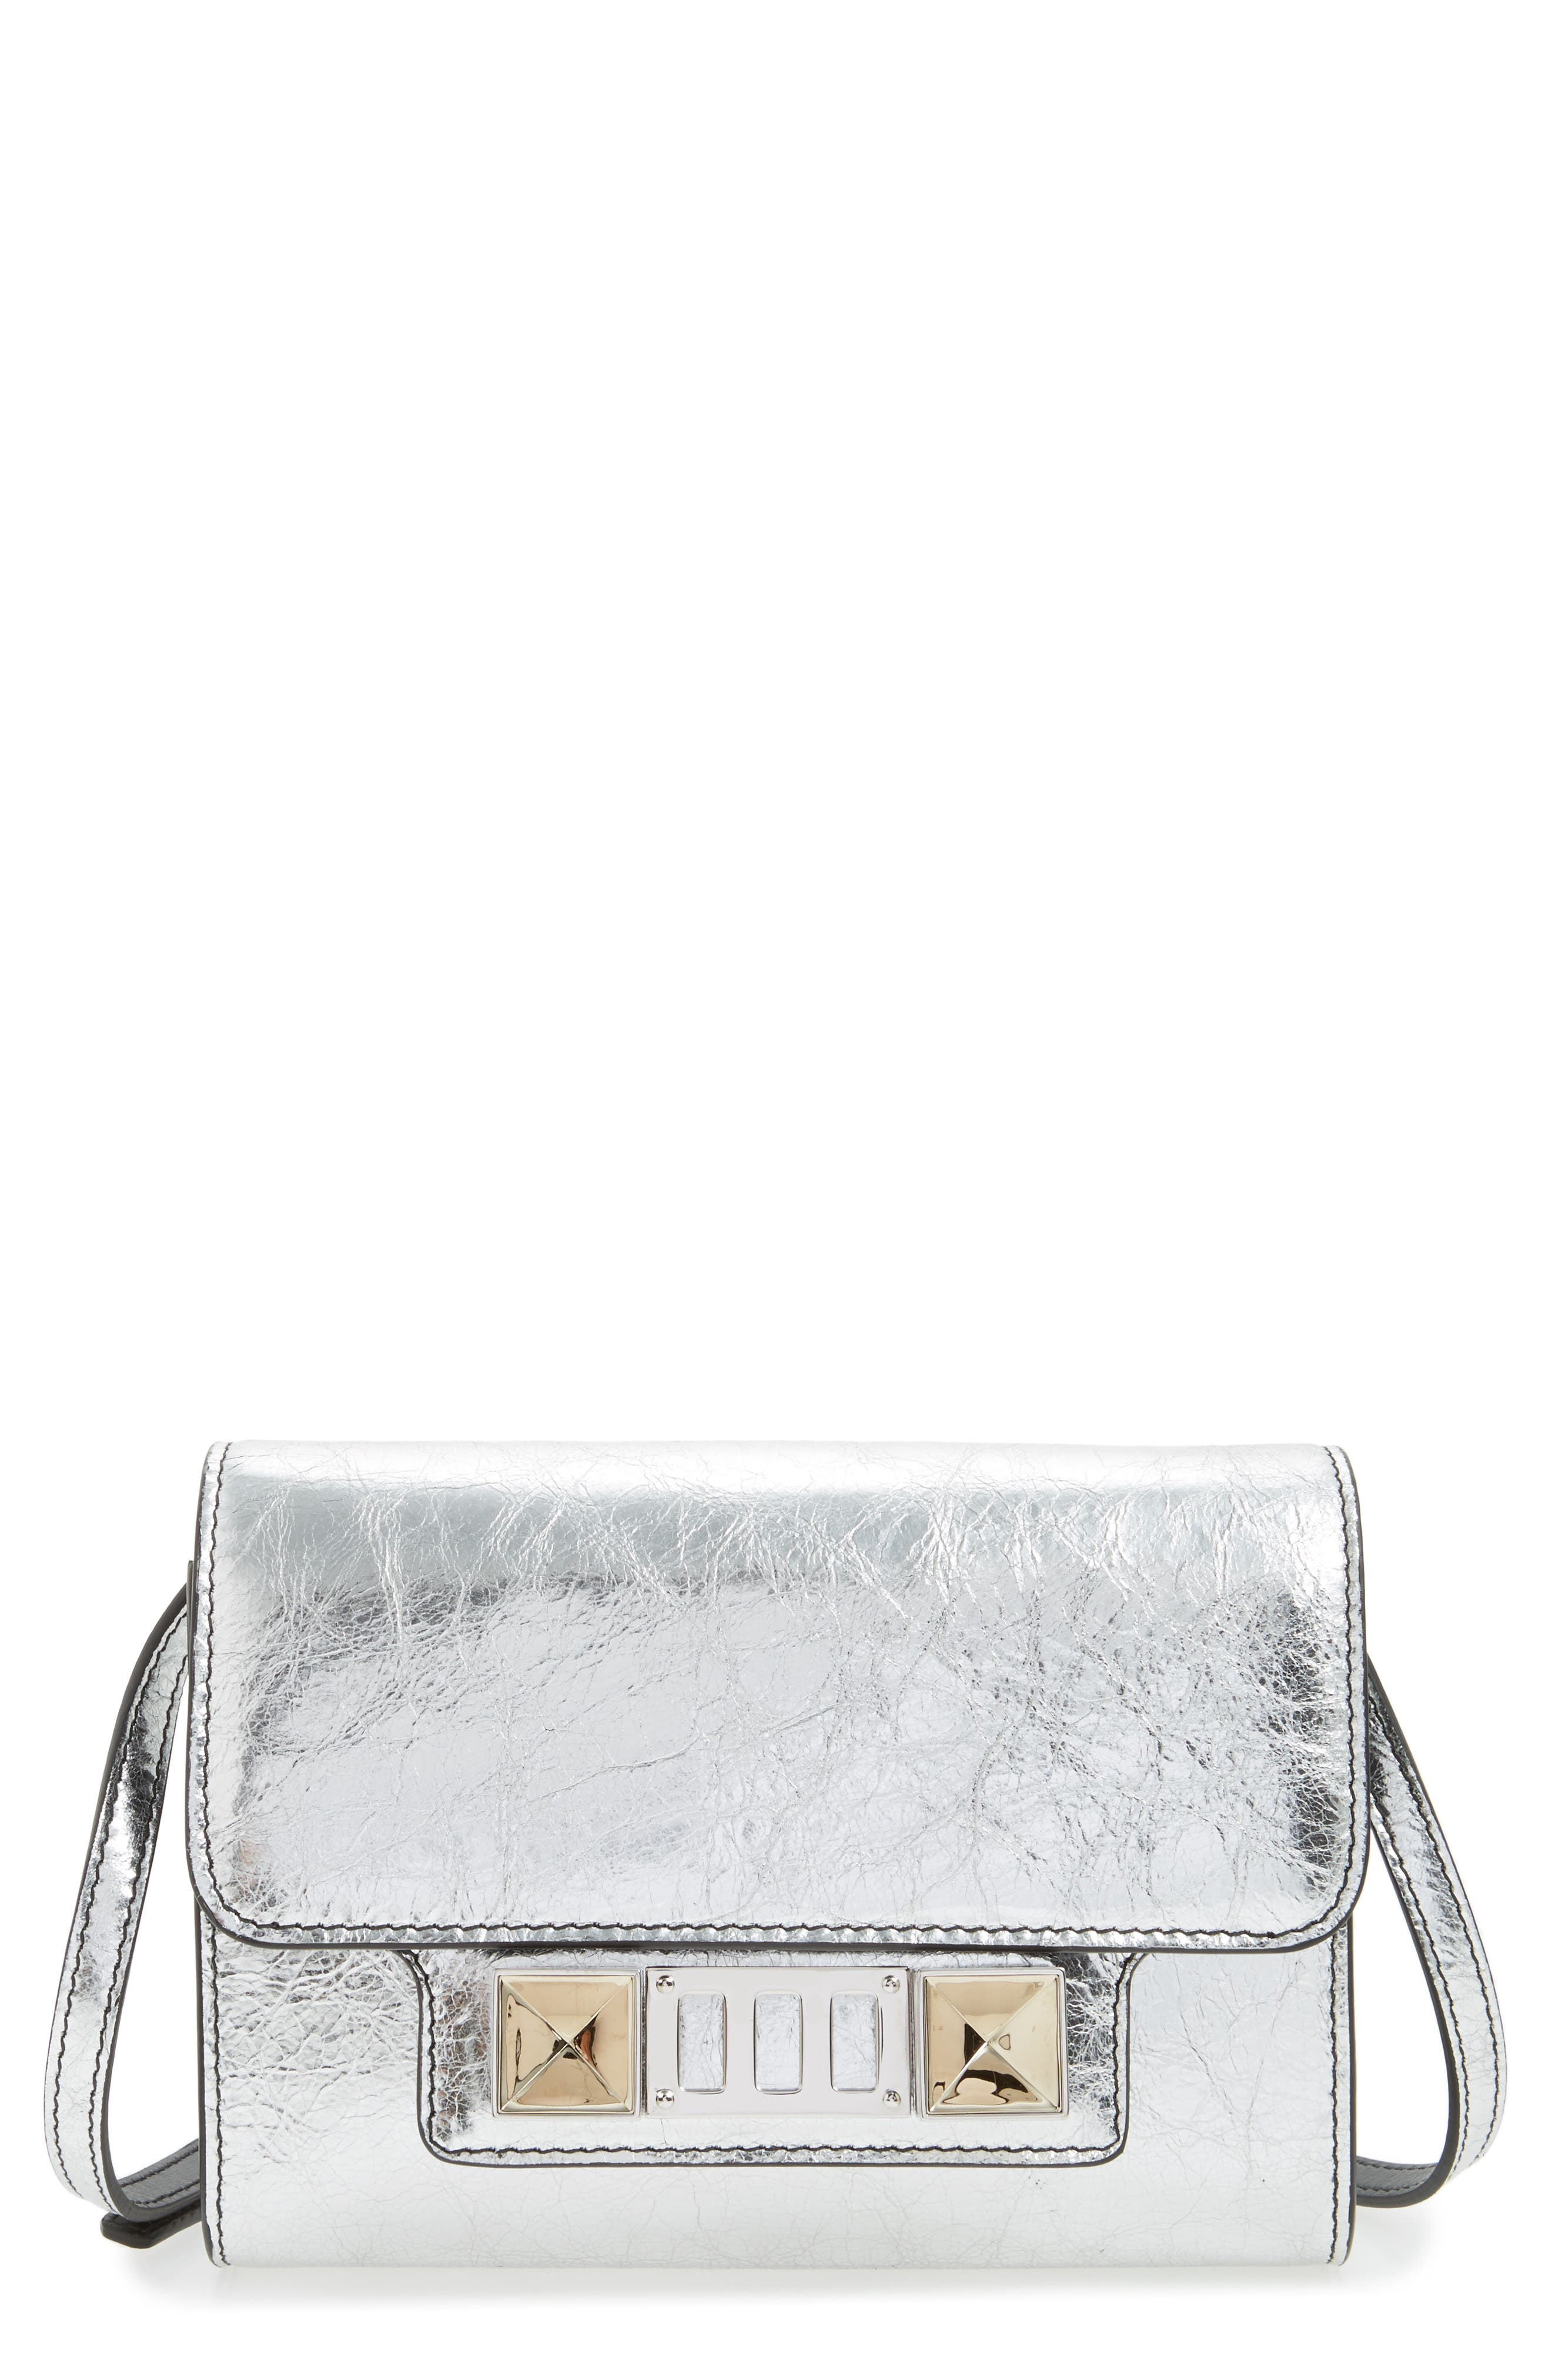 PS11 Leather Crossbody Wallet,                         Main,                         color, SILVER